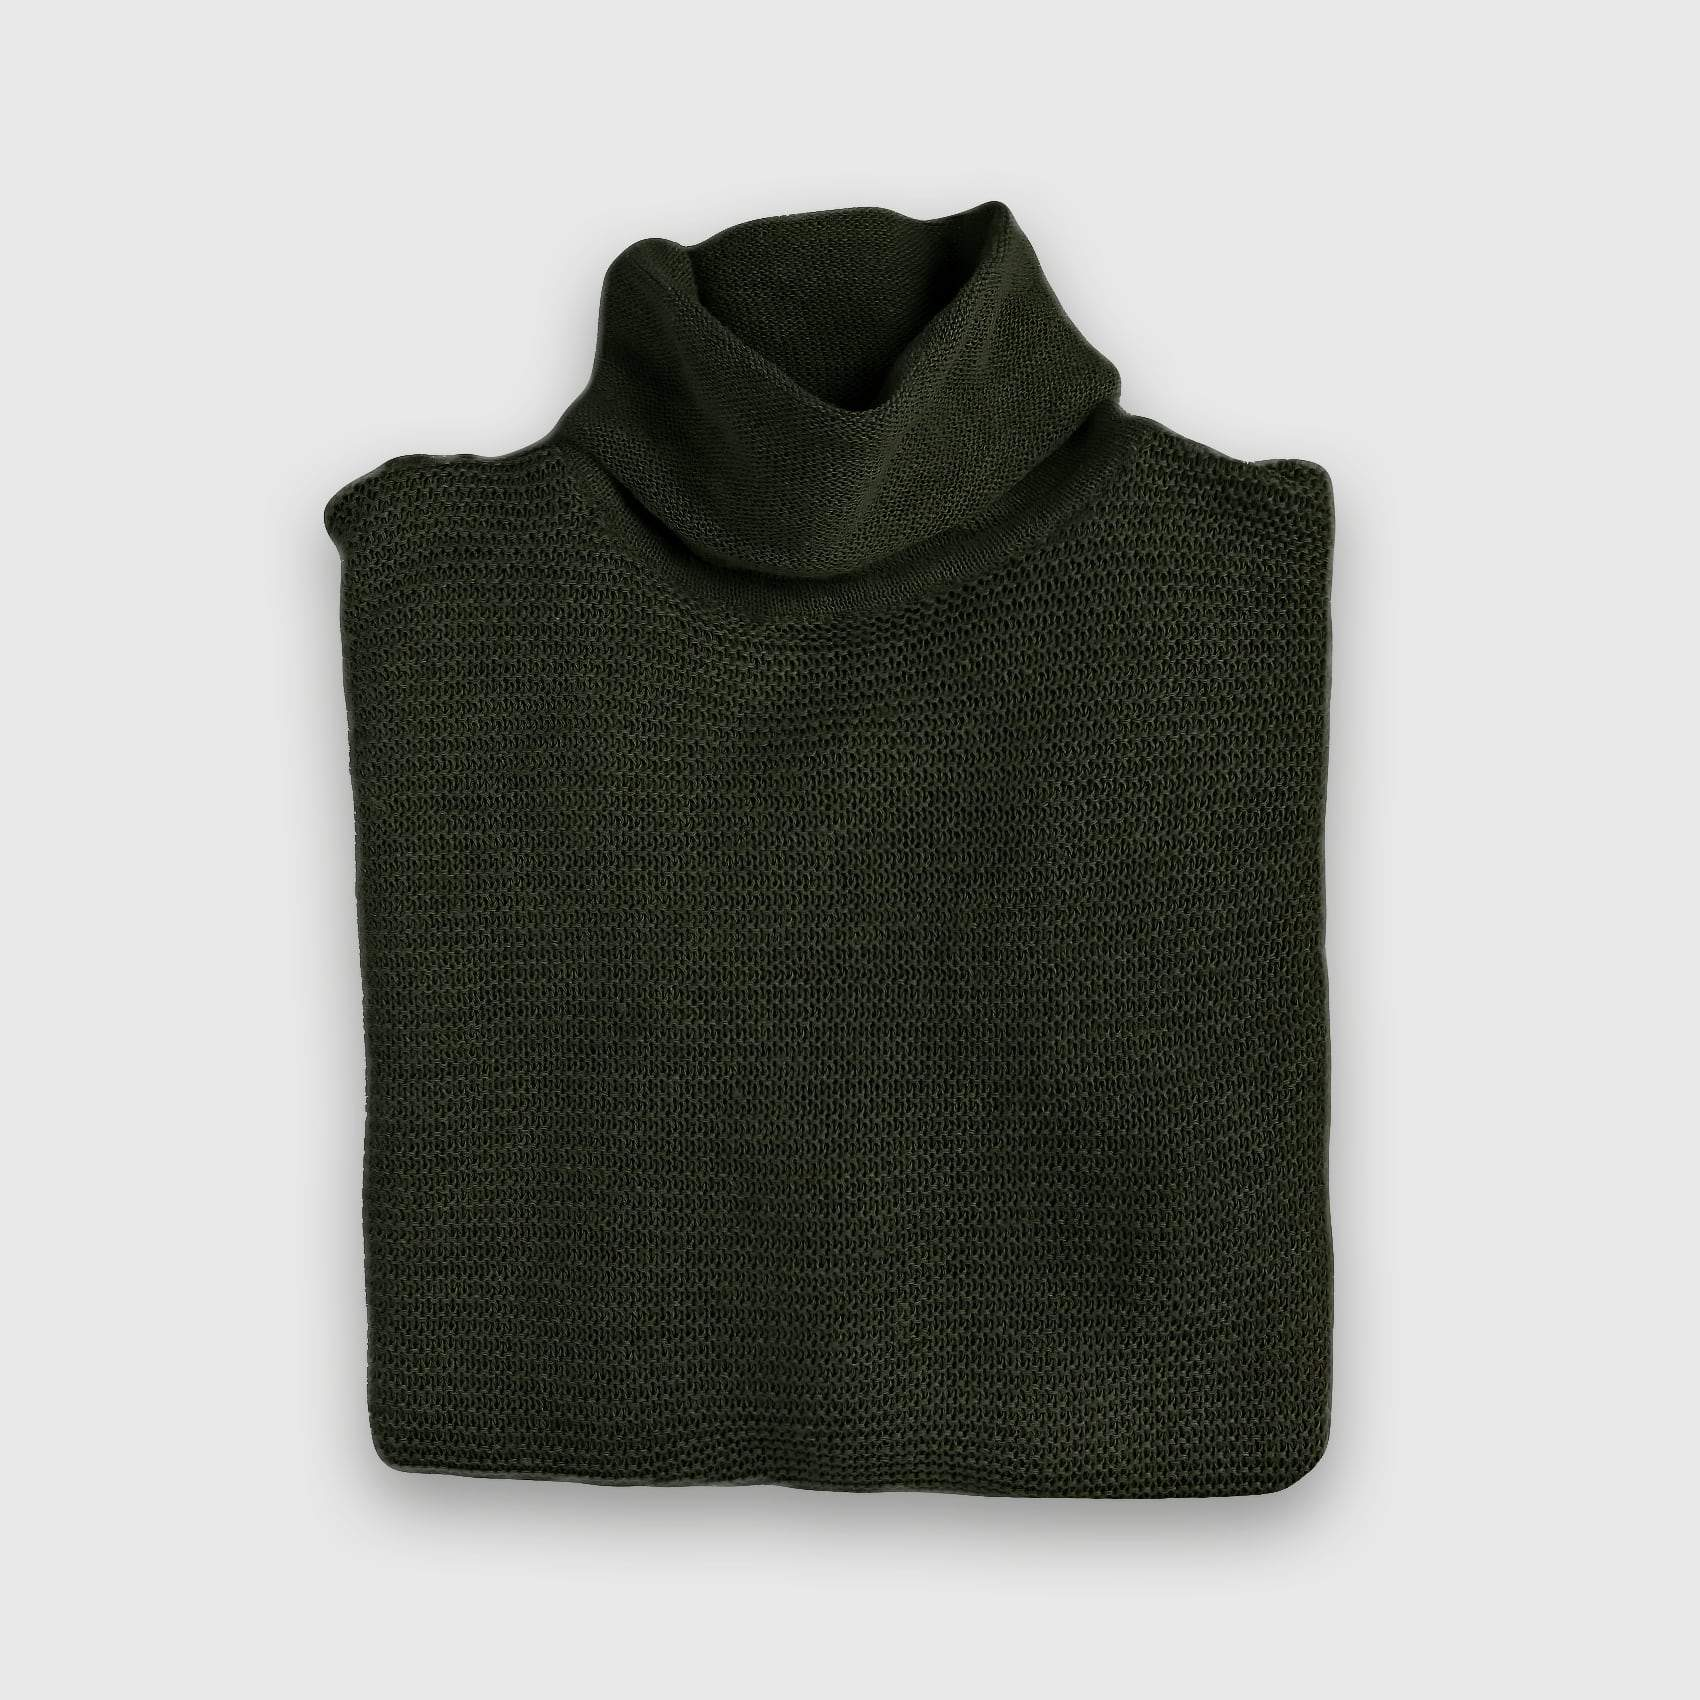 Lupettino Sweater One Opera Campi XXXS Verde Autunno